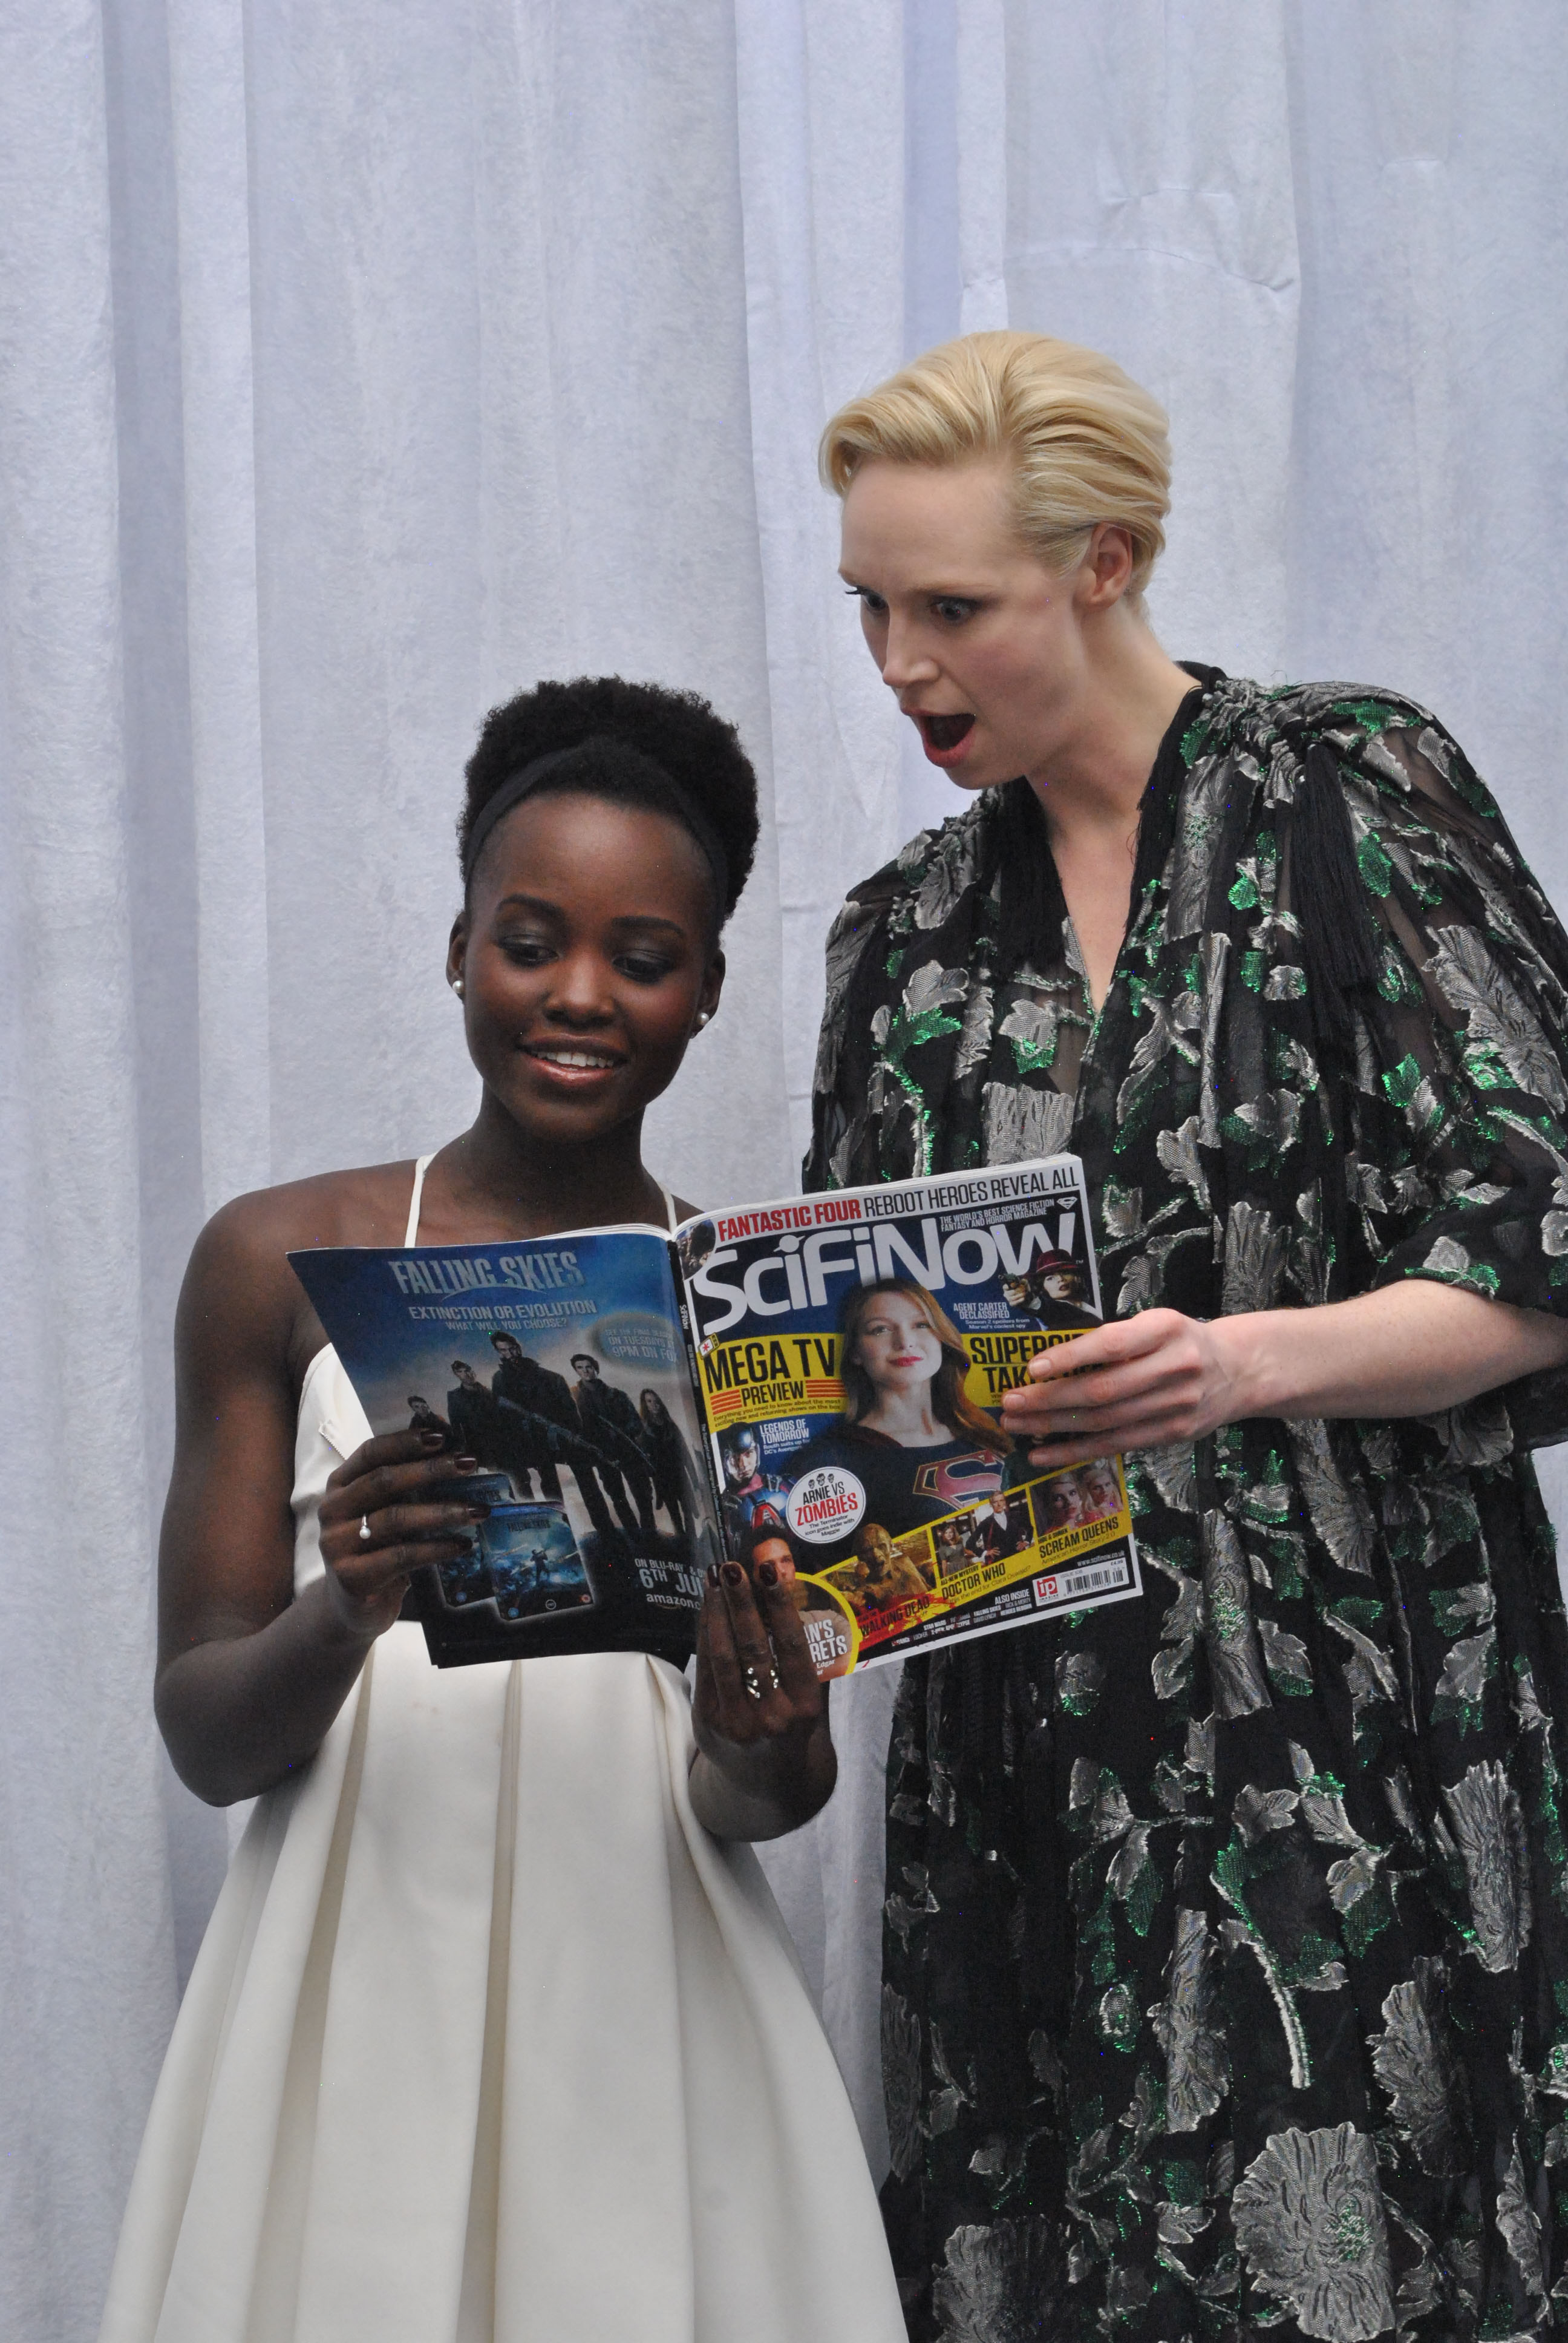 Lupita Nyong'o & Gwendoline Christie 120415 Star Wars The Force Awakens - 38(1)